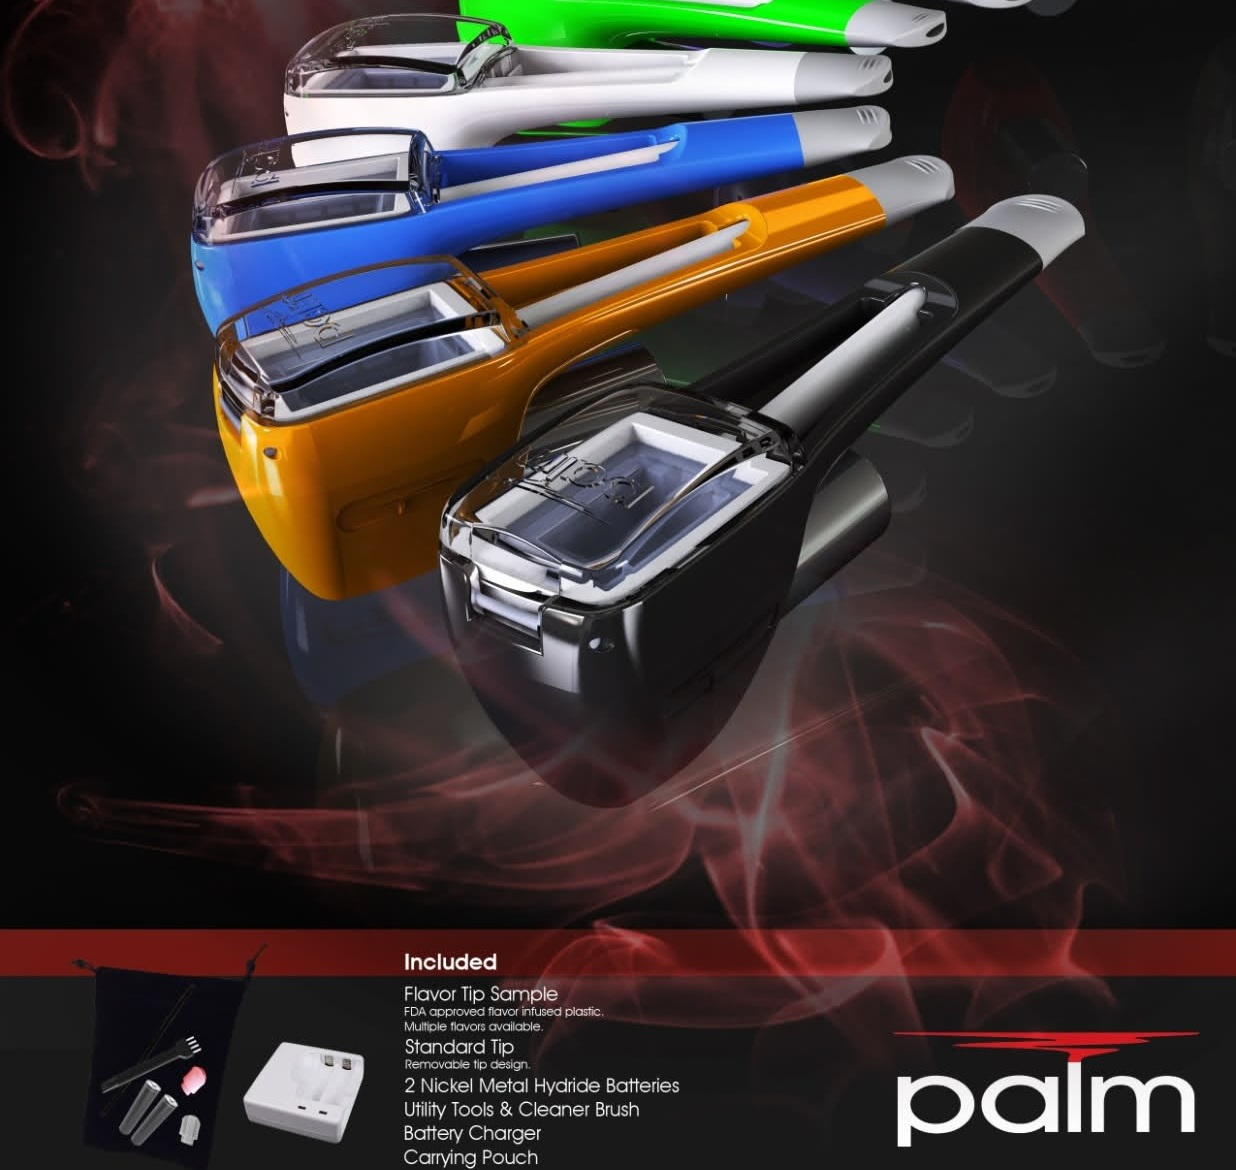 Palm Vape2 First Look: The Palm Vaporizer